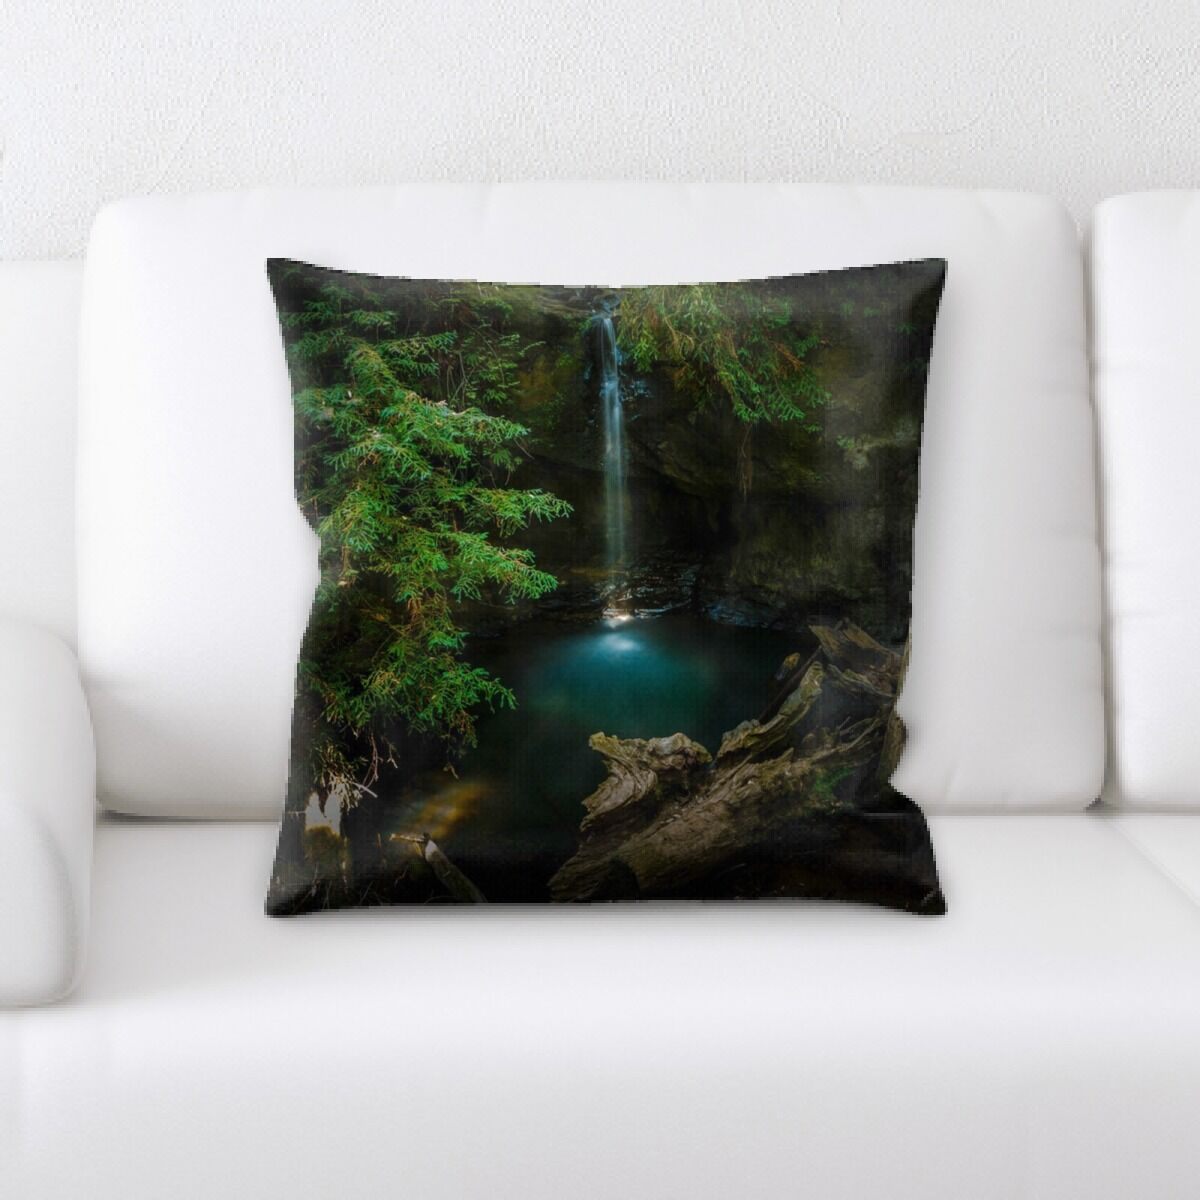 Lanier Waterfall (229) Throw Pillow